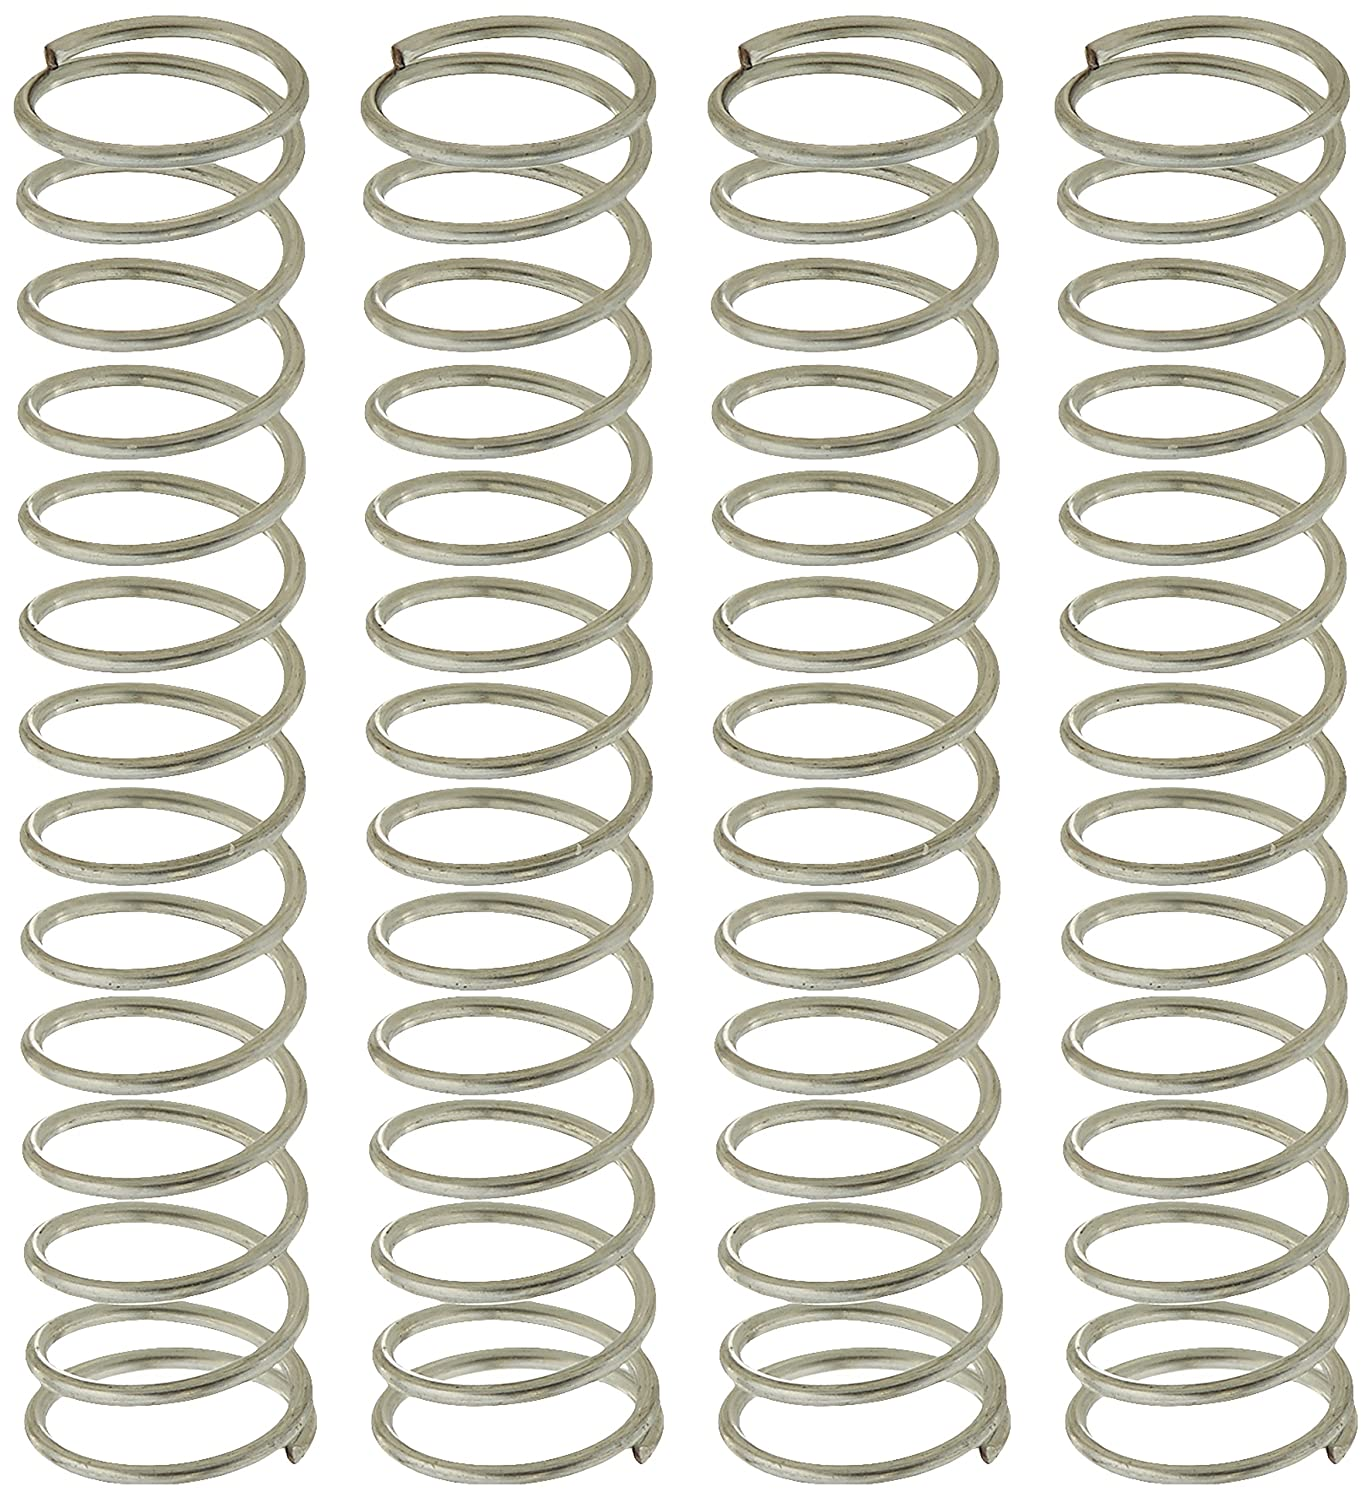 Prime Line Products SP 9719 Compression Spring with .025 Diameter 9 32 x 1 3 8